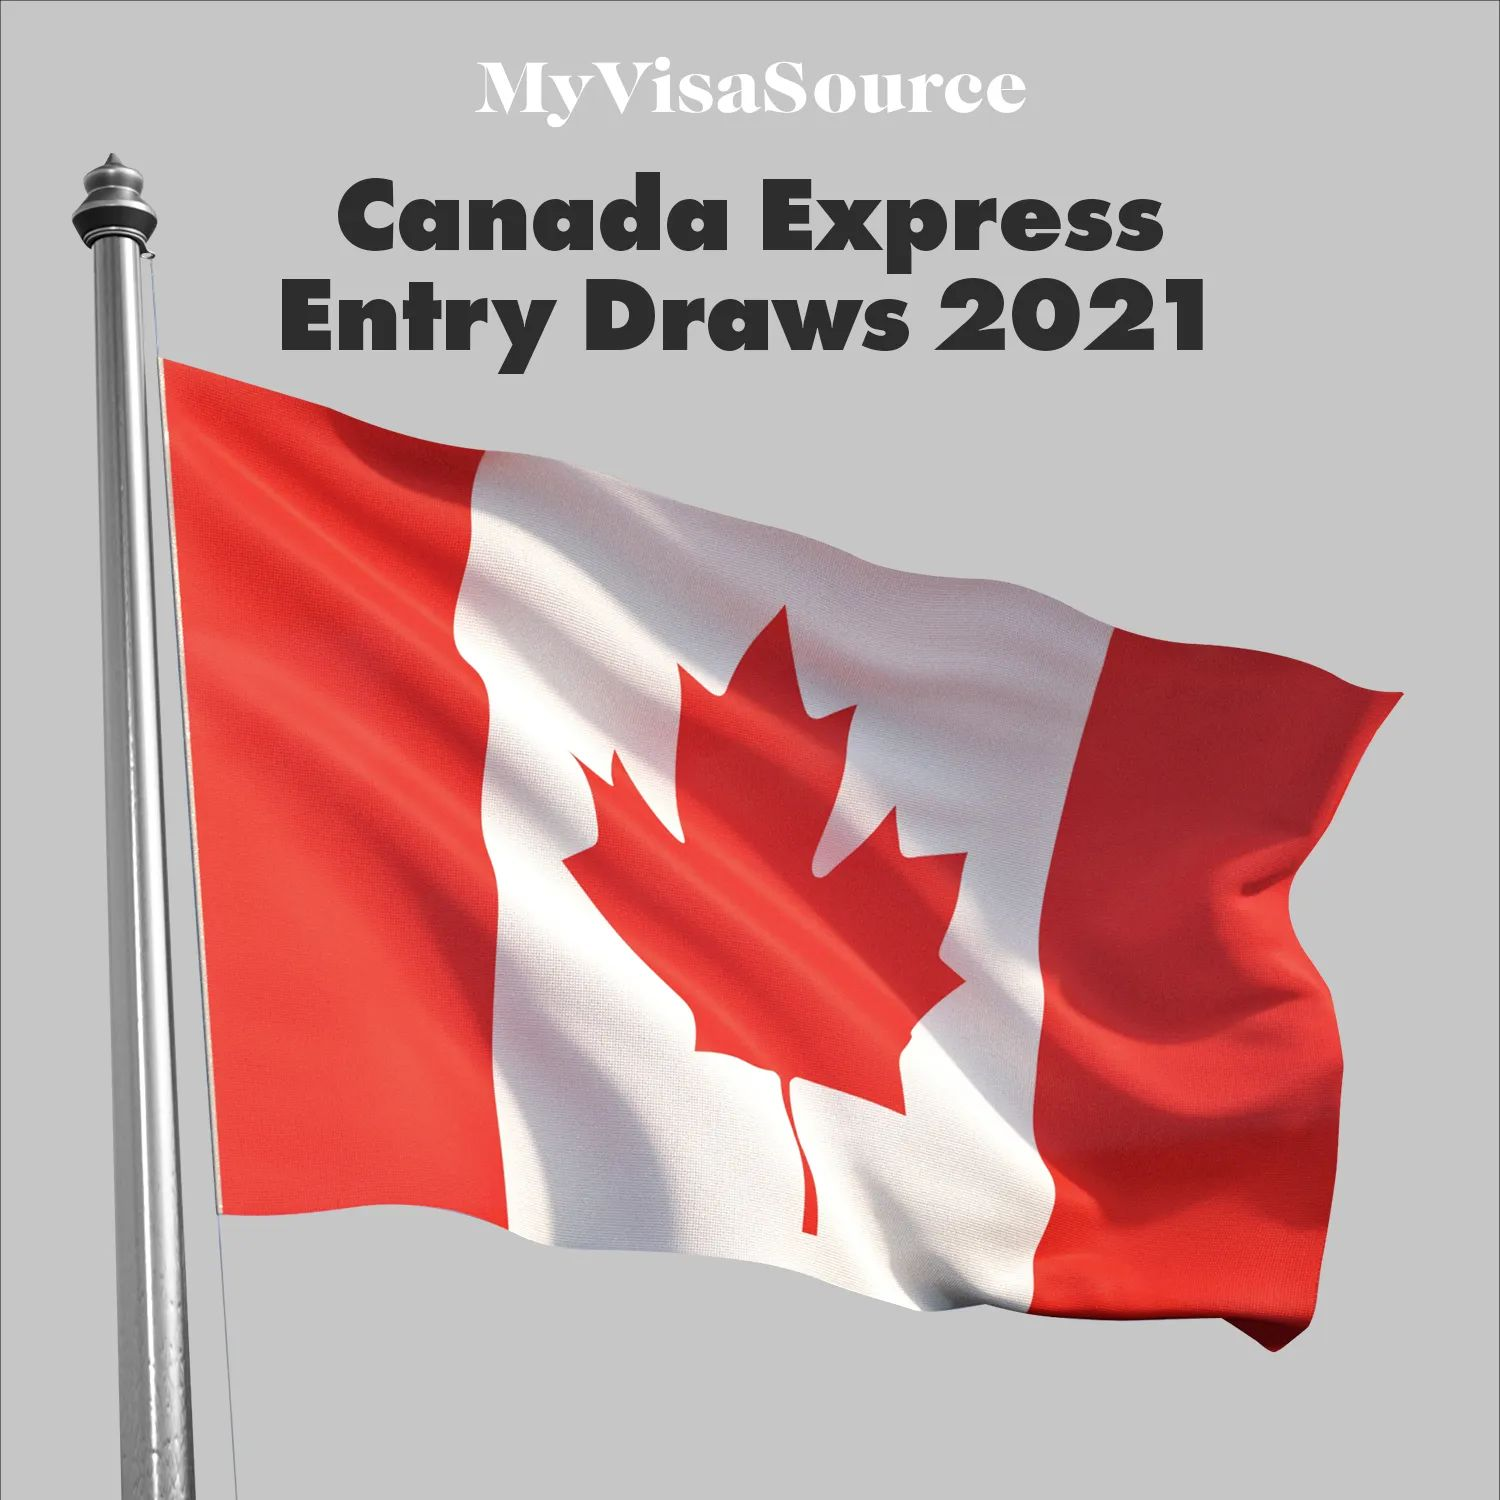 a-canadian-flag-by-my-visa-source